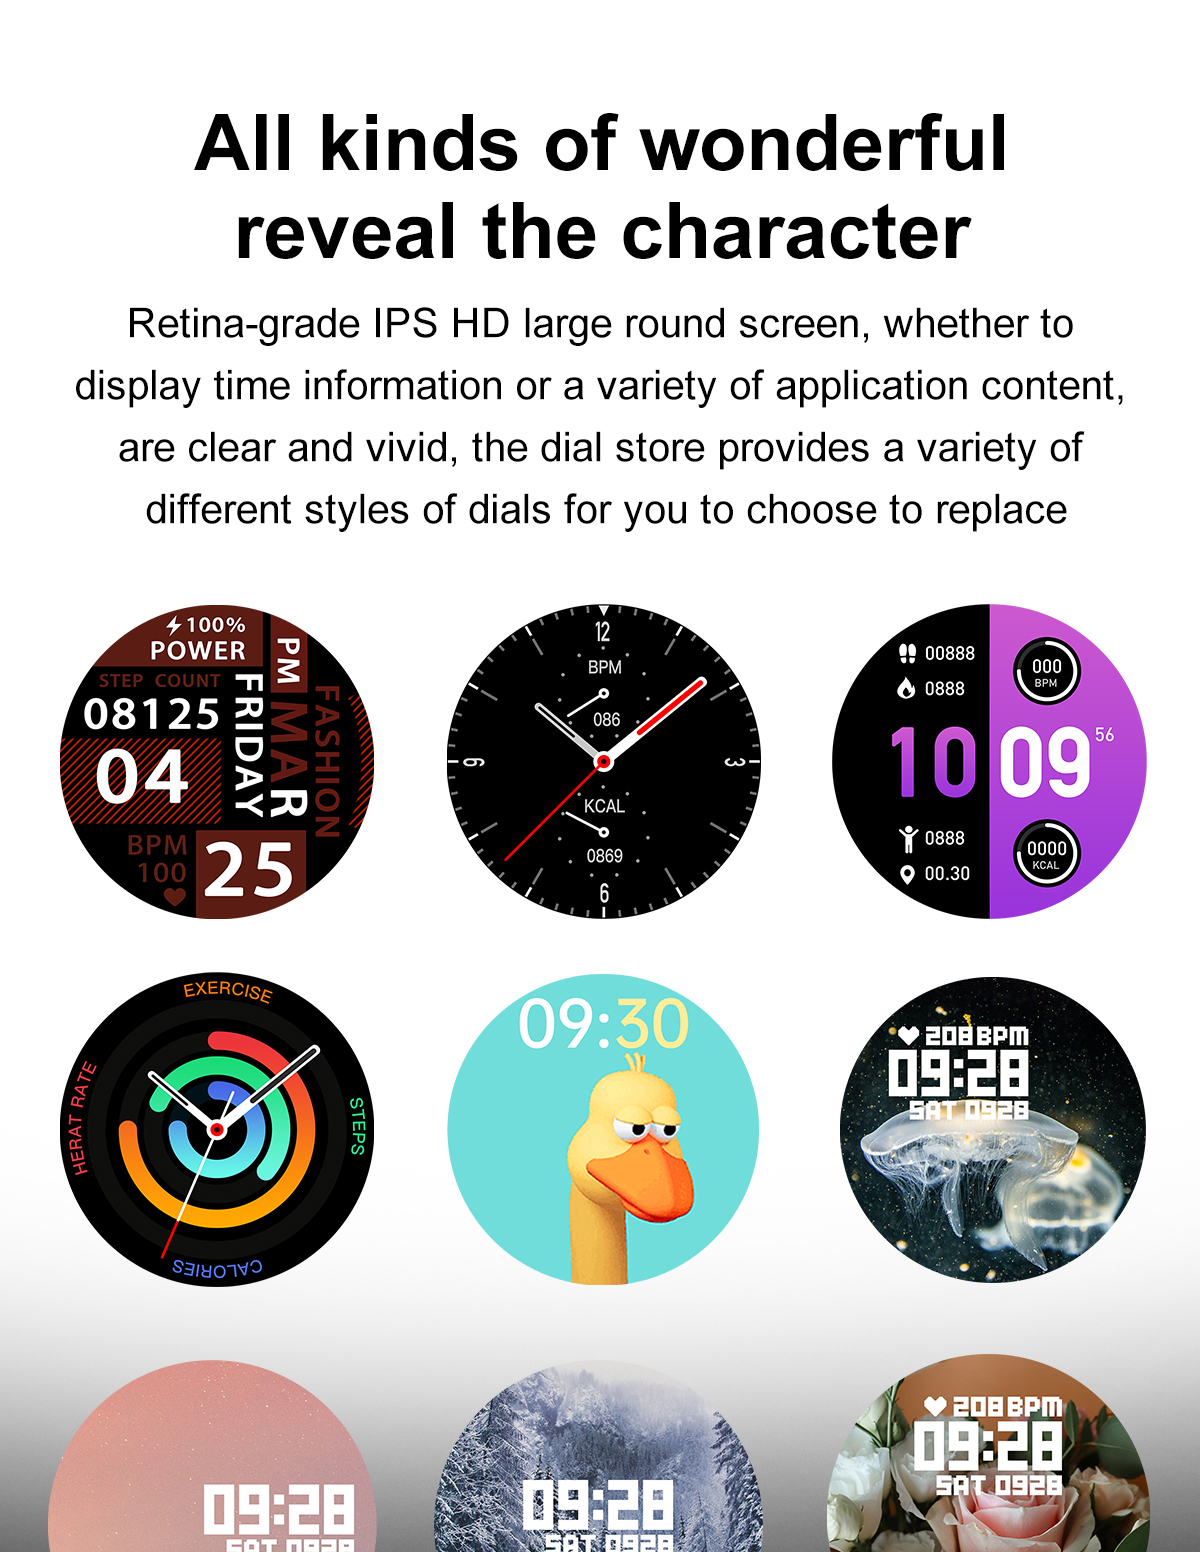 2021 NEW Smart Watch Women Men Full Touch Fitness Tracker IP67 Waterproof Smartwatch For Android Xiaomi 2021 NEW Smart Watch Women Men Full Touch Fitness Tracker IP67 Waterproof Smartwatch For Android Xiaomi Redmi